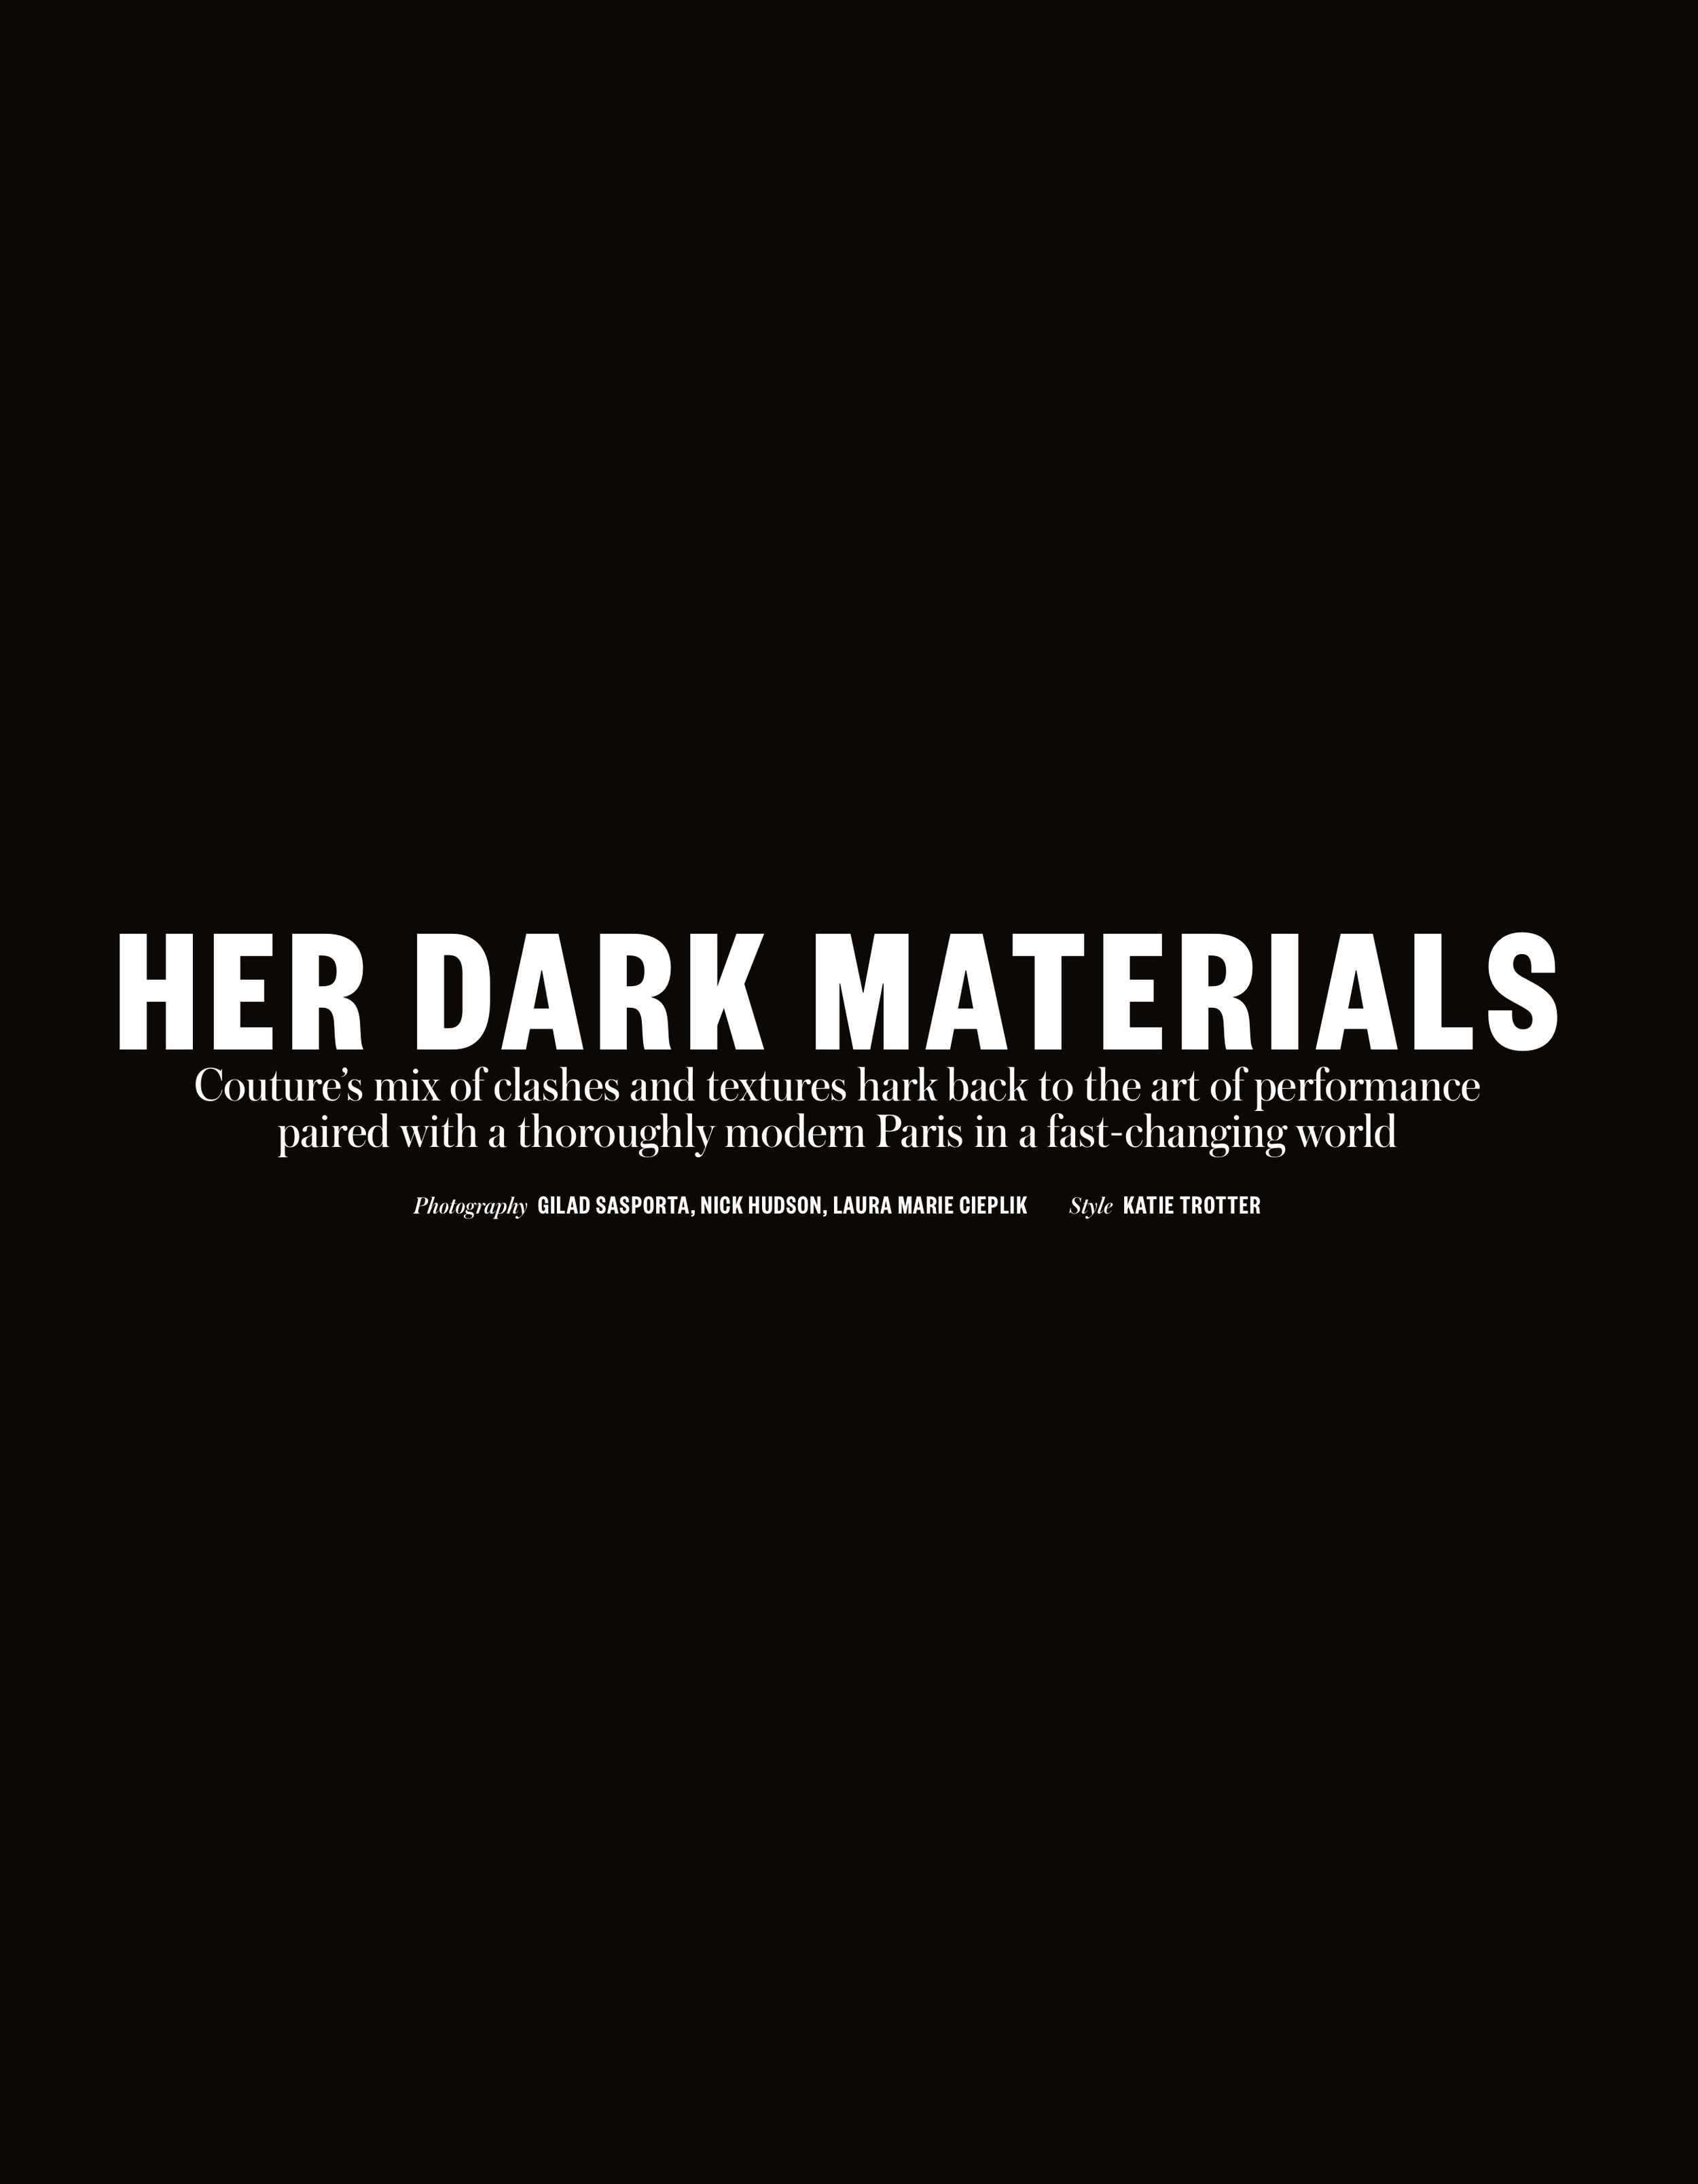 Her Dark Matterials (Paris Couture)1.jpg